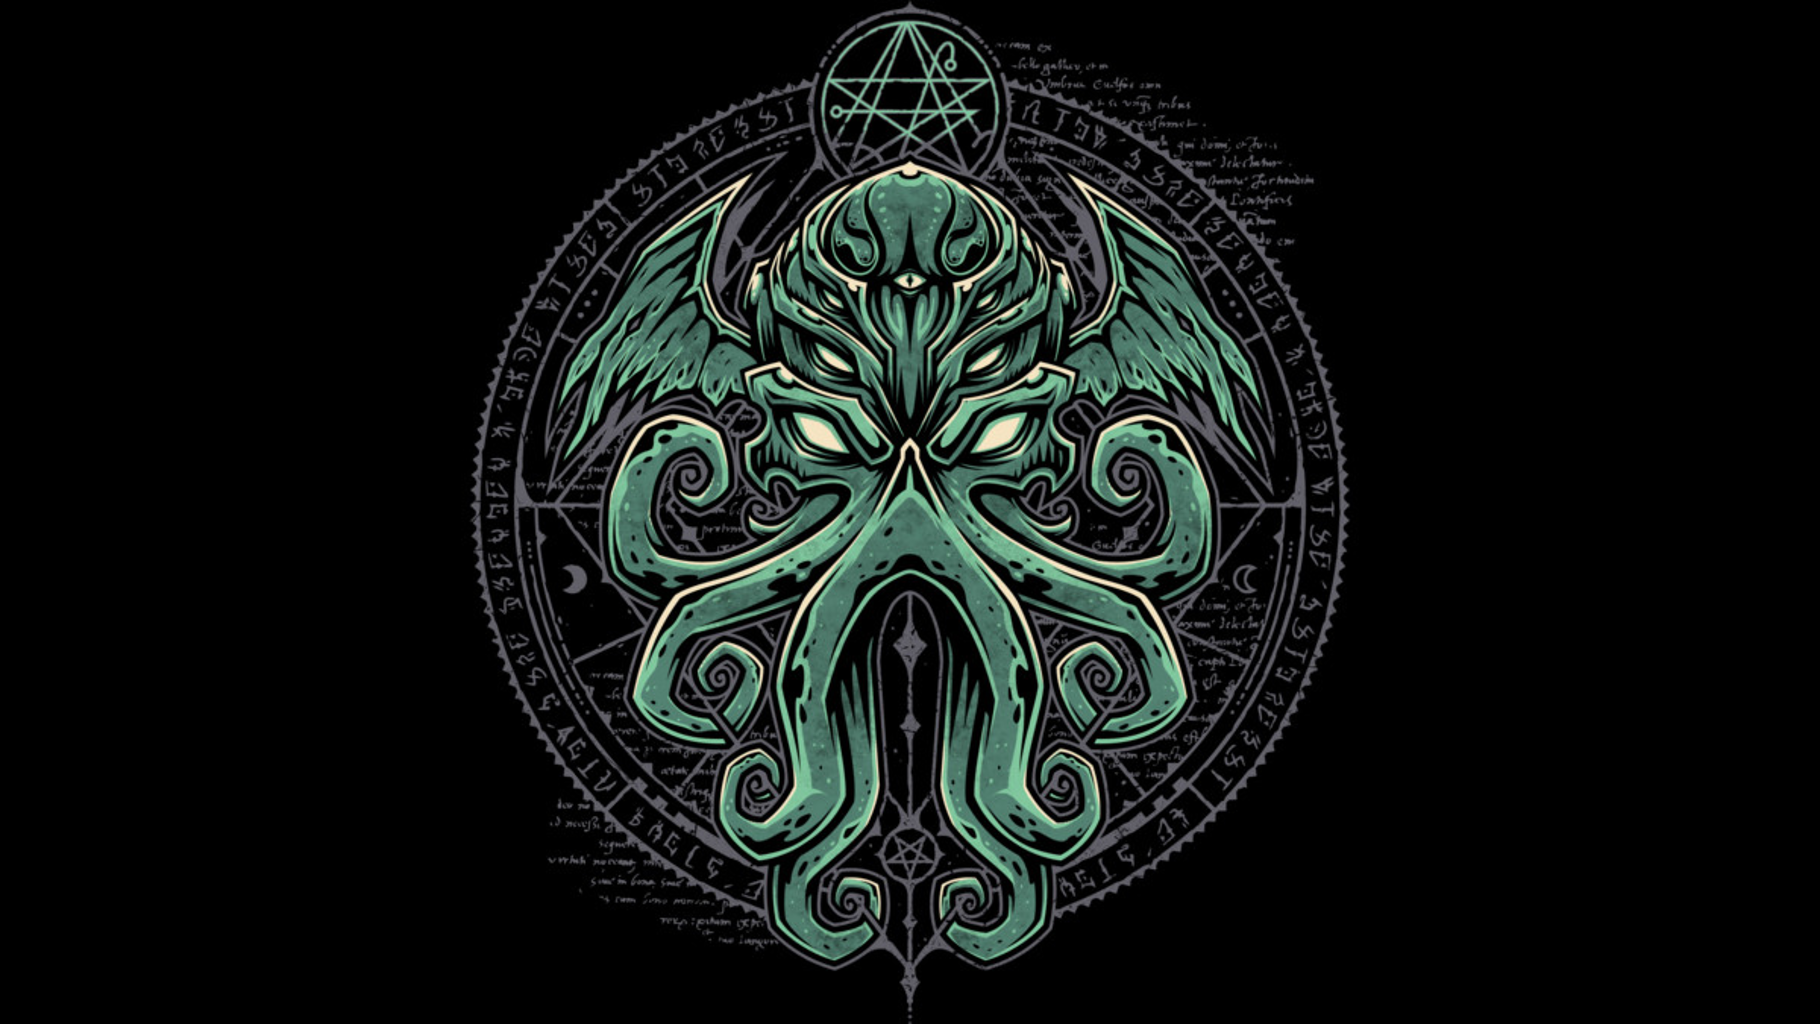 Design by Humans: Great Cthulhu